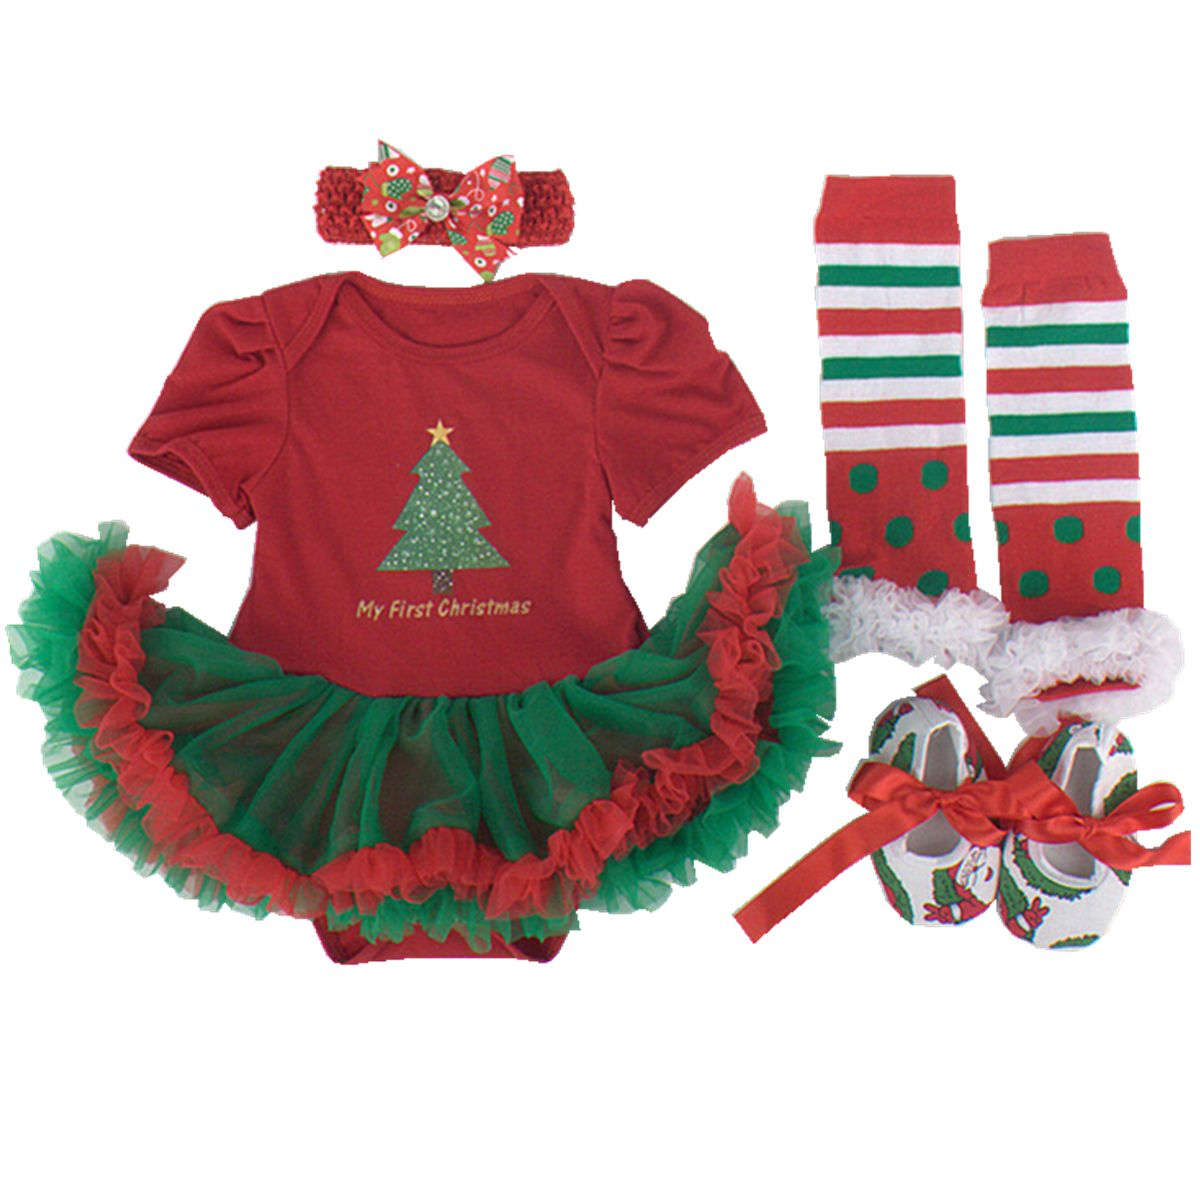 30c31cd4f Baby Girls Christmas Theme Romper Tutu Skirt Dress Outfits L GreenTree ***  You can get additional details at the image link.